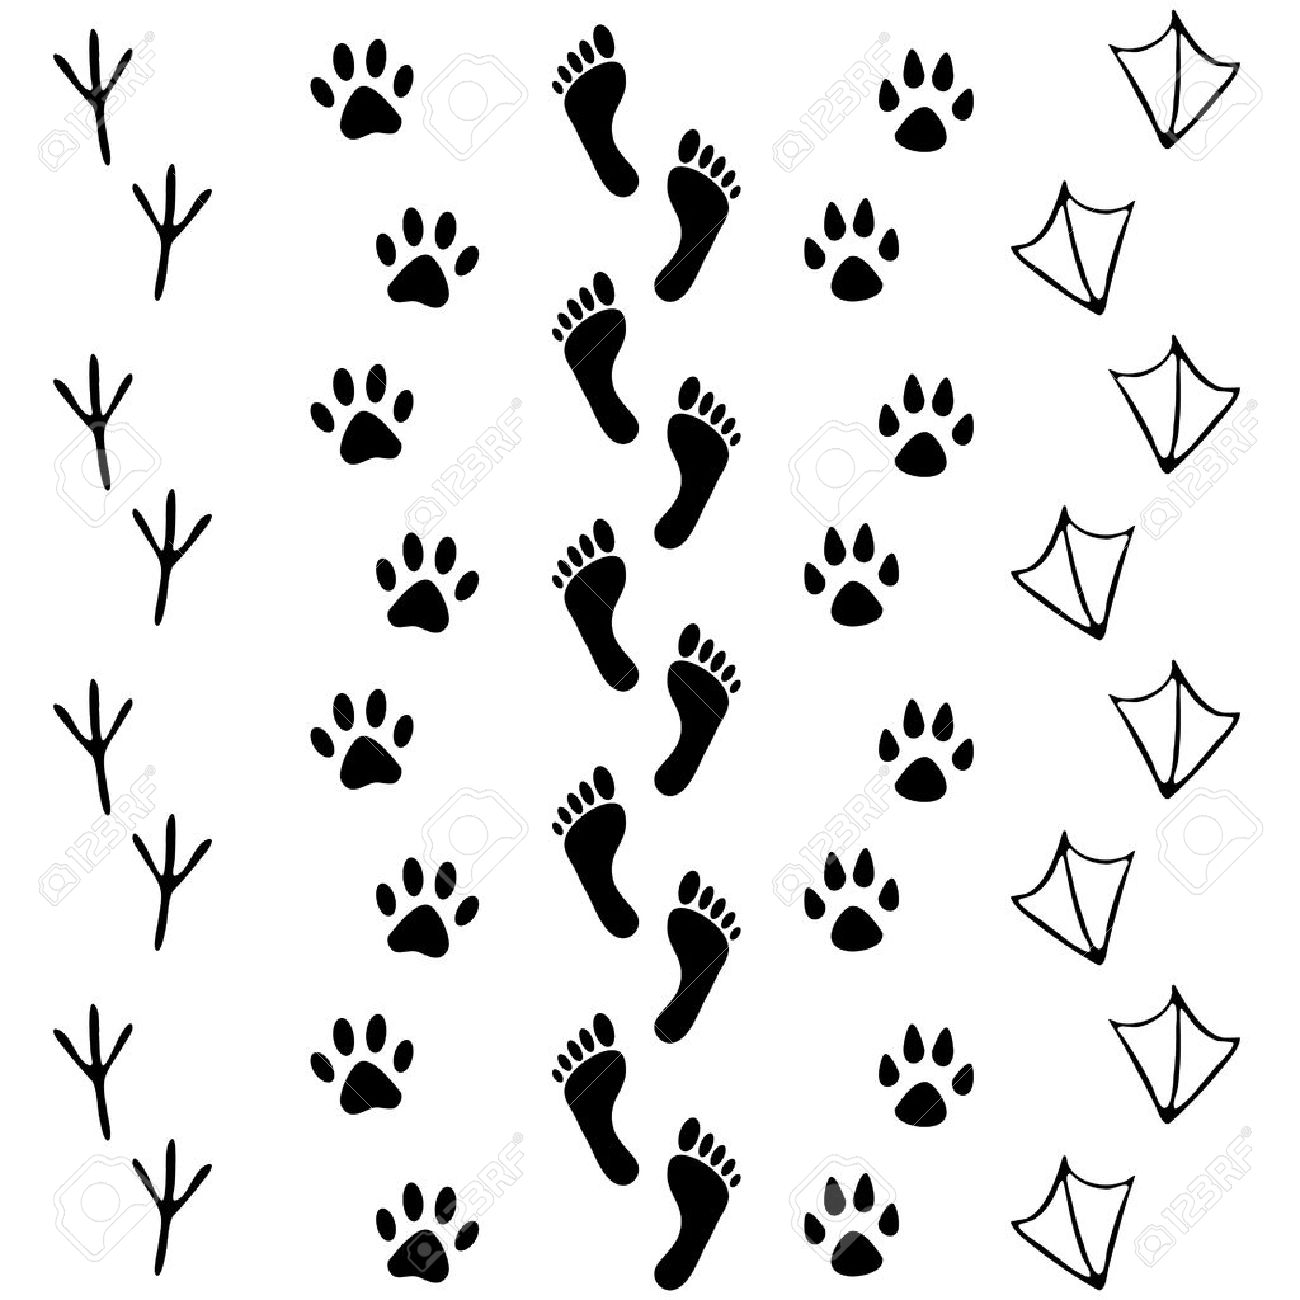 Vector set of human and animal, bird footprints icon. Collection of human foots, cat, dog, bird, chicken, hen, crow, duck footprint. Design for frames, invitation and greeting cards - 52414055